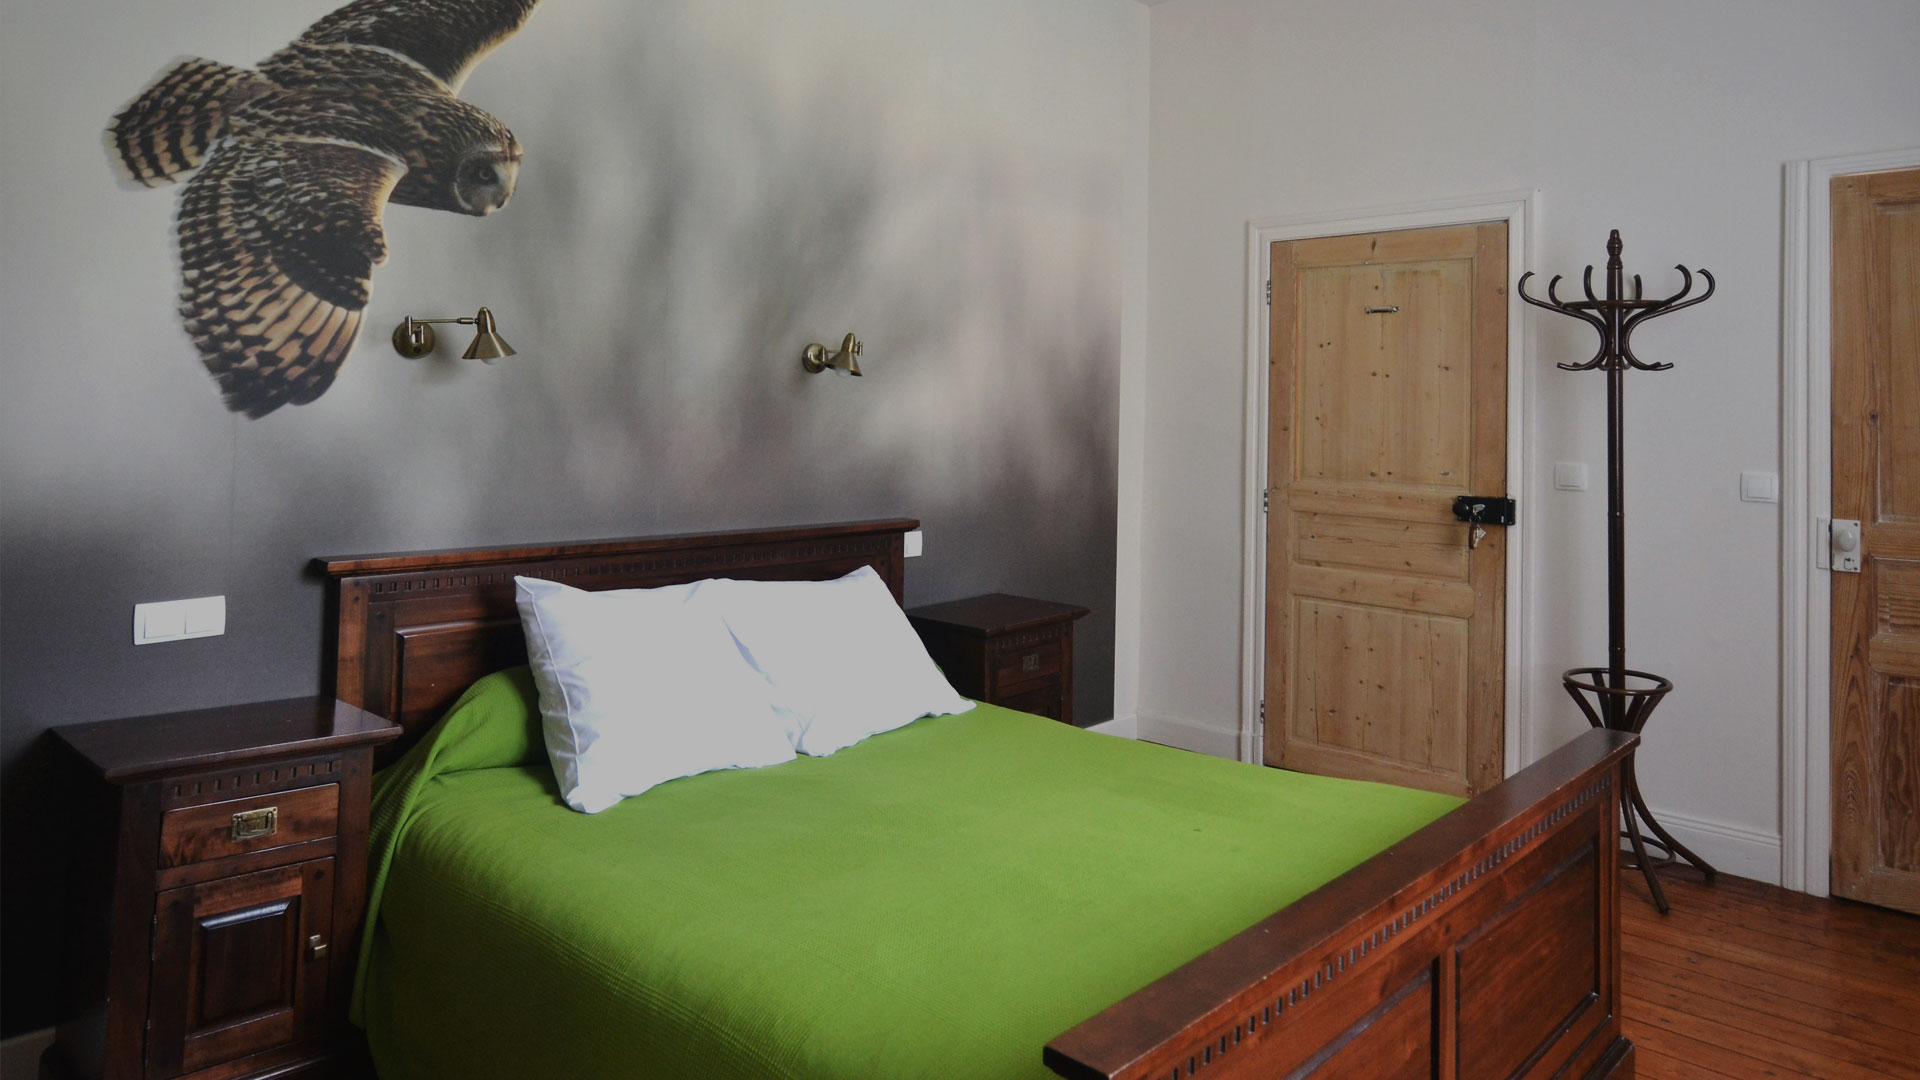 The guest rooms